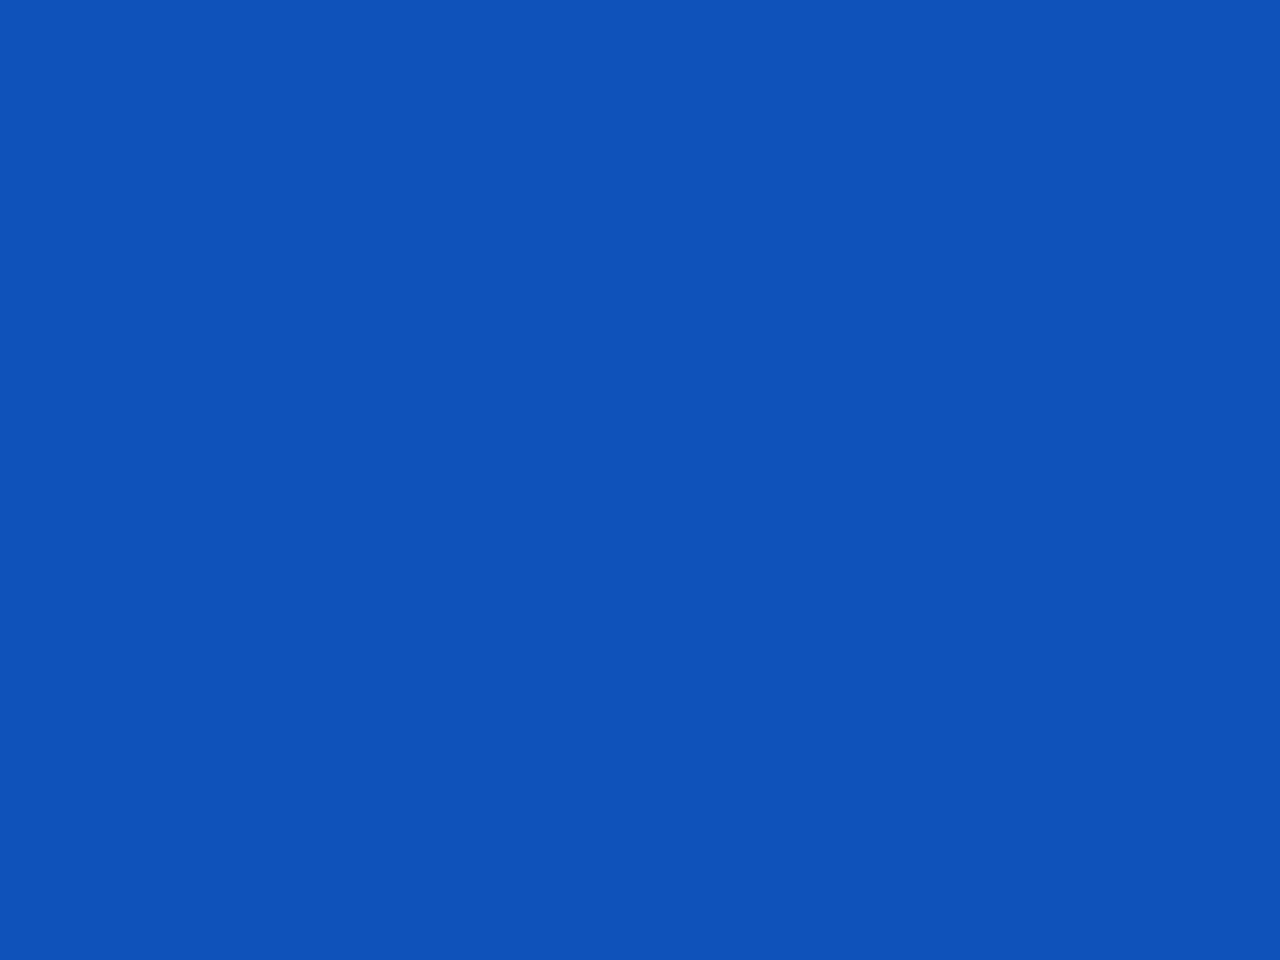 1280x960 Sapphire Solid Color Background